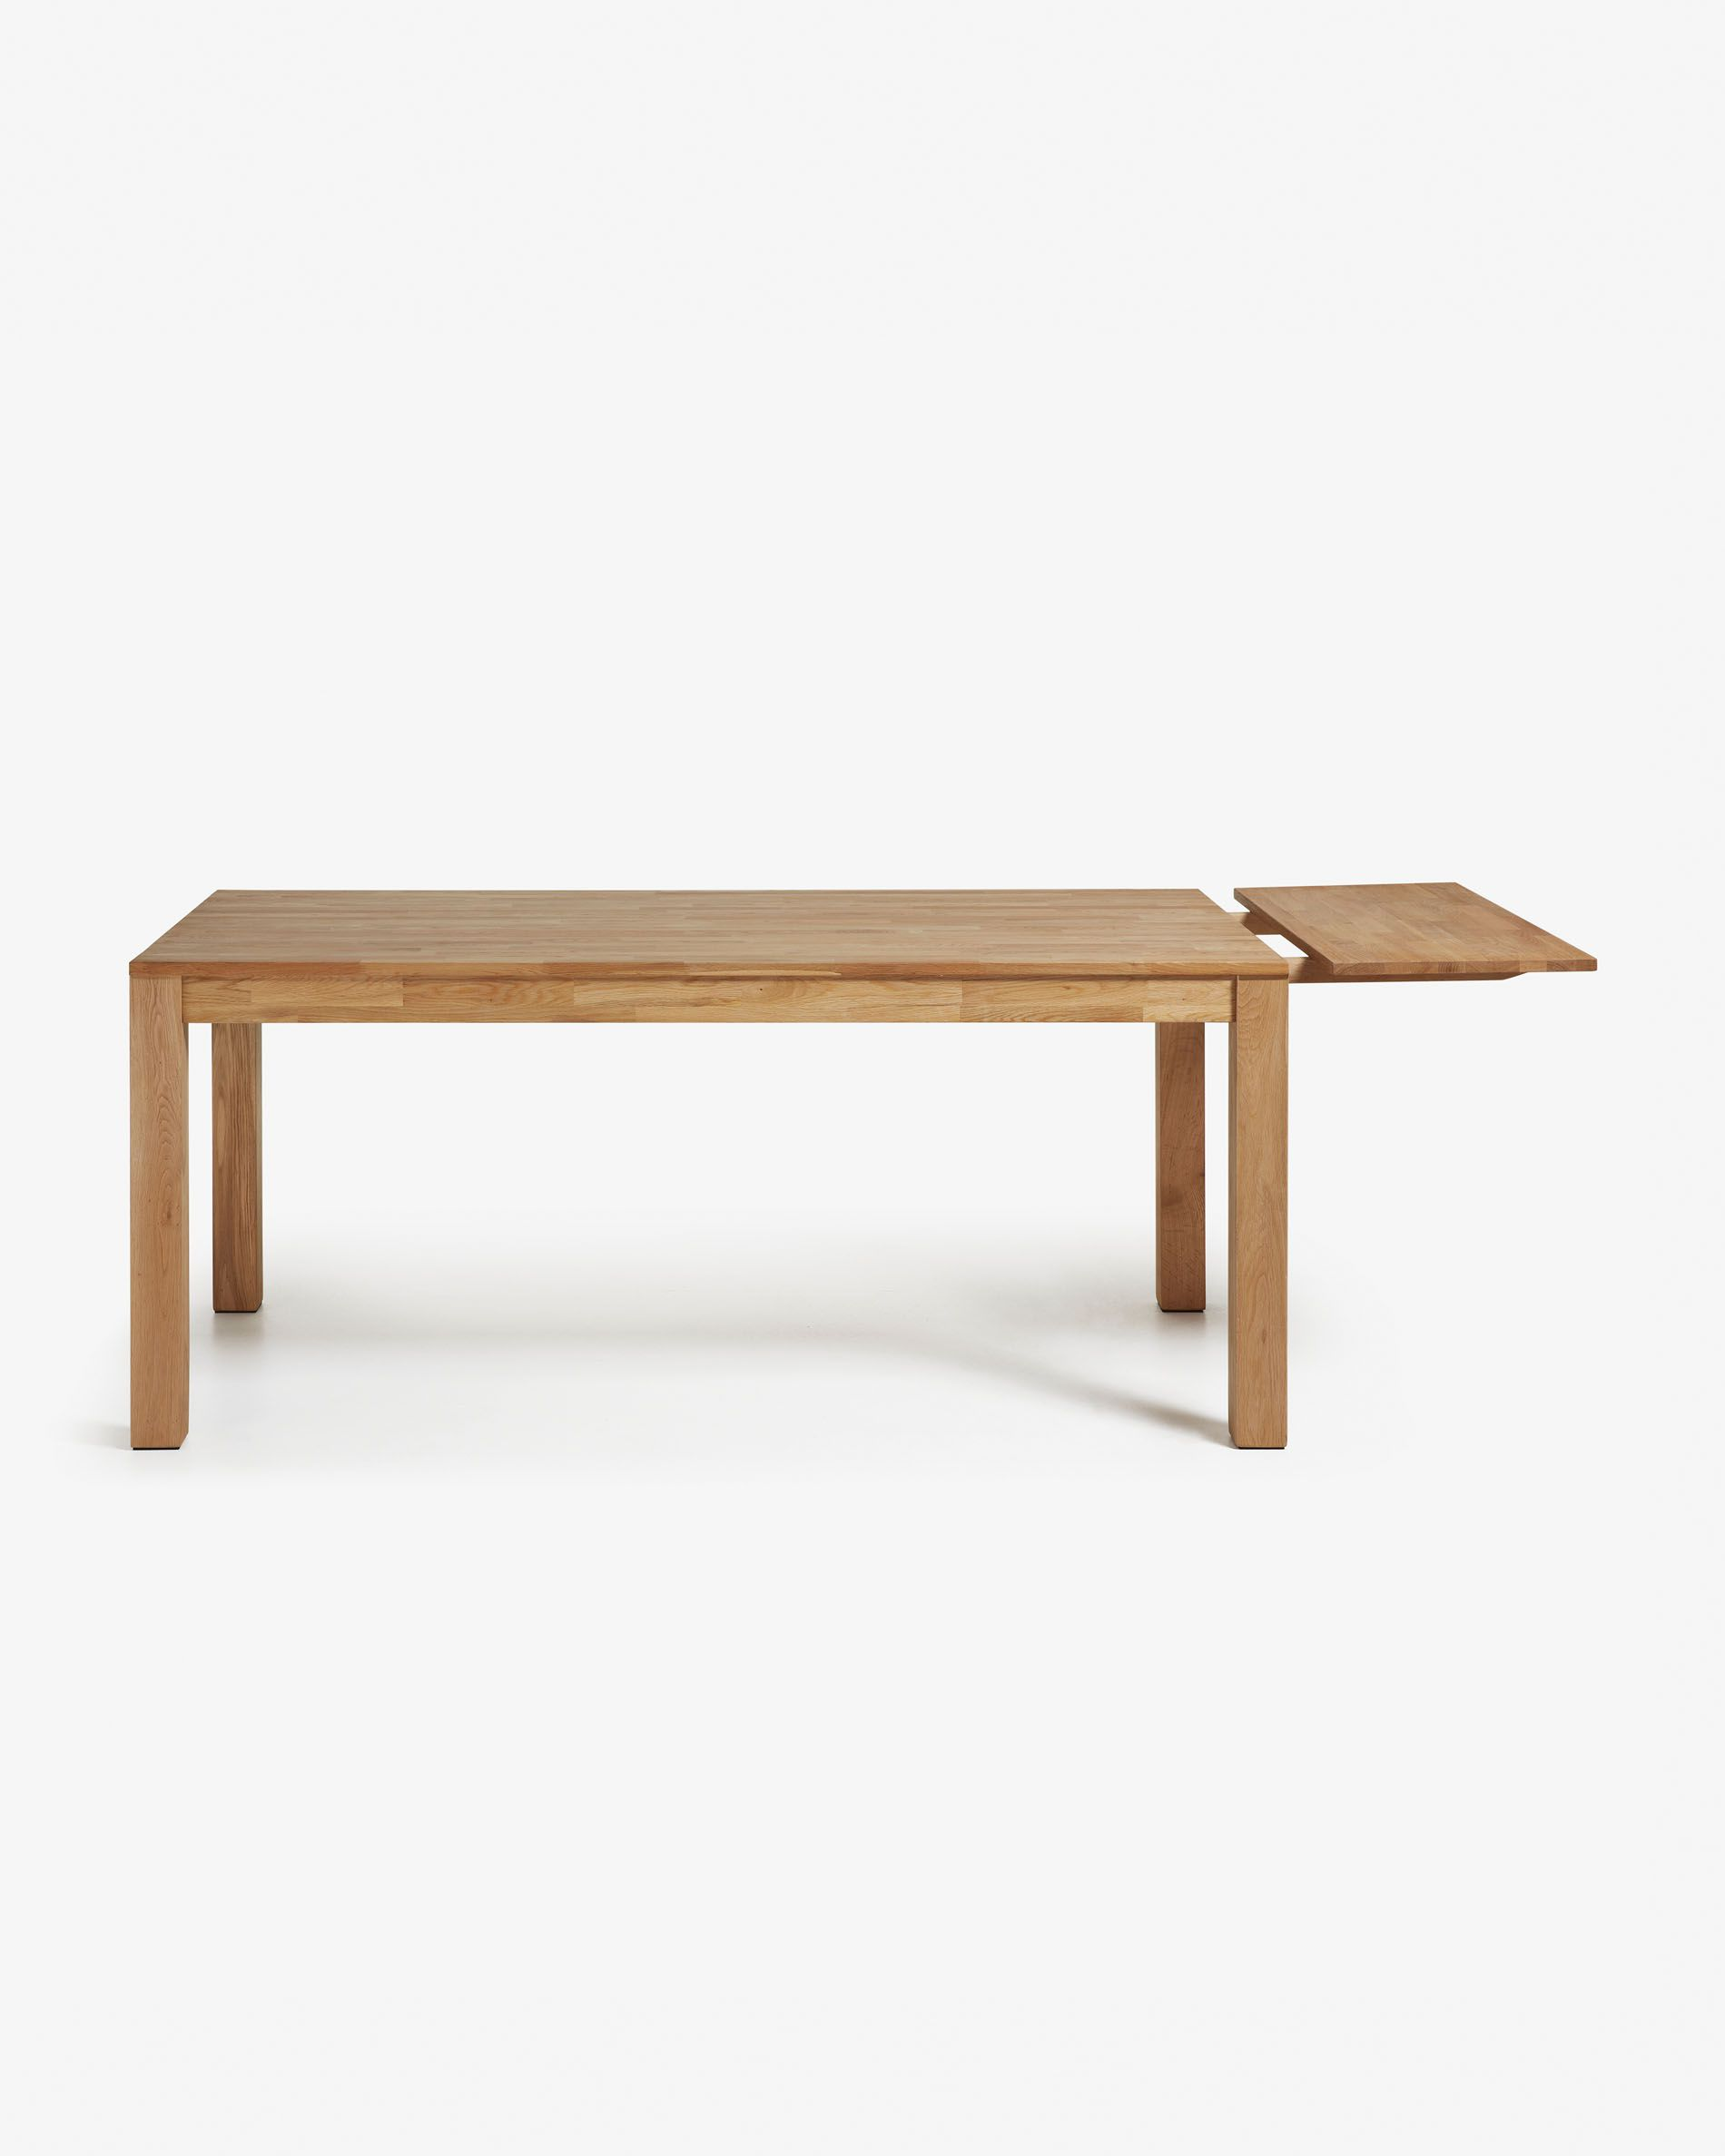 Table Banc Bois Exterieur Beau Table Extensible isbel 120 200 X 75 Cm Of 21 Charmant Table Banc Bois Exterieur